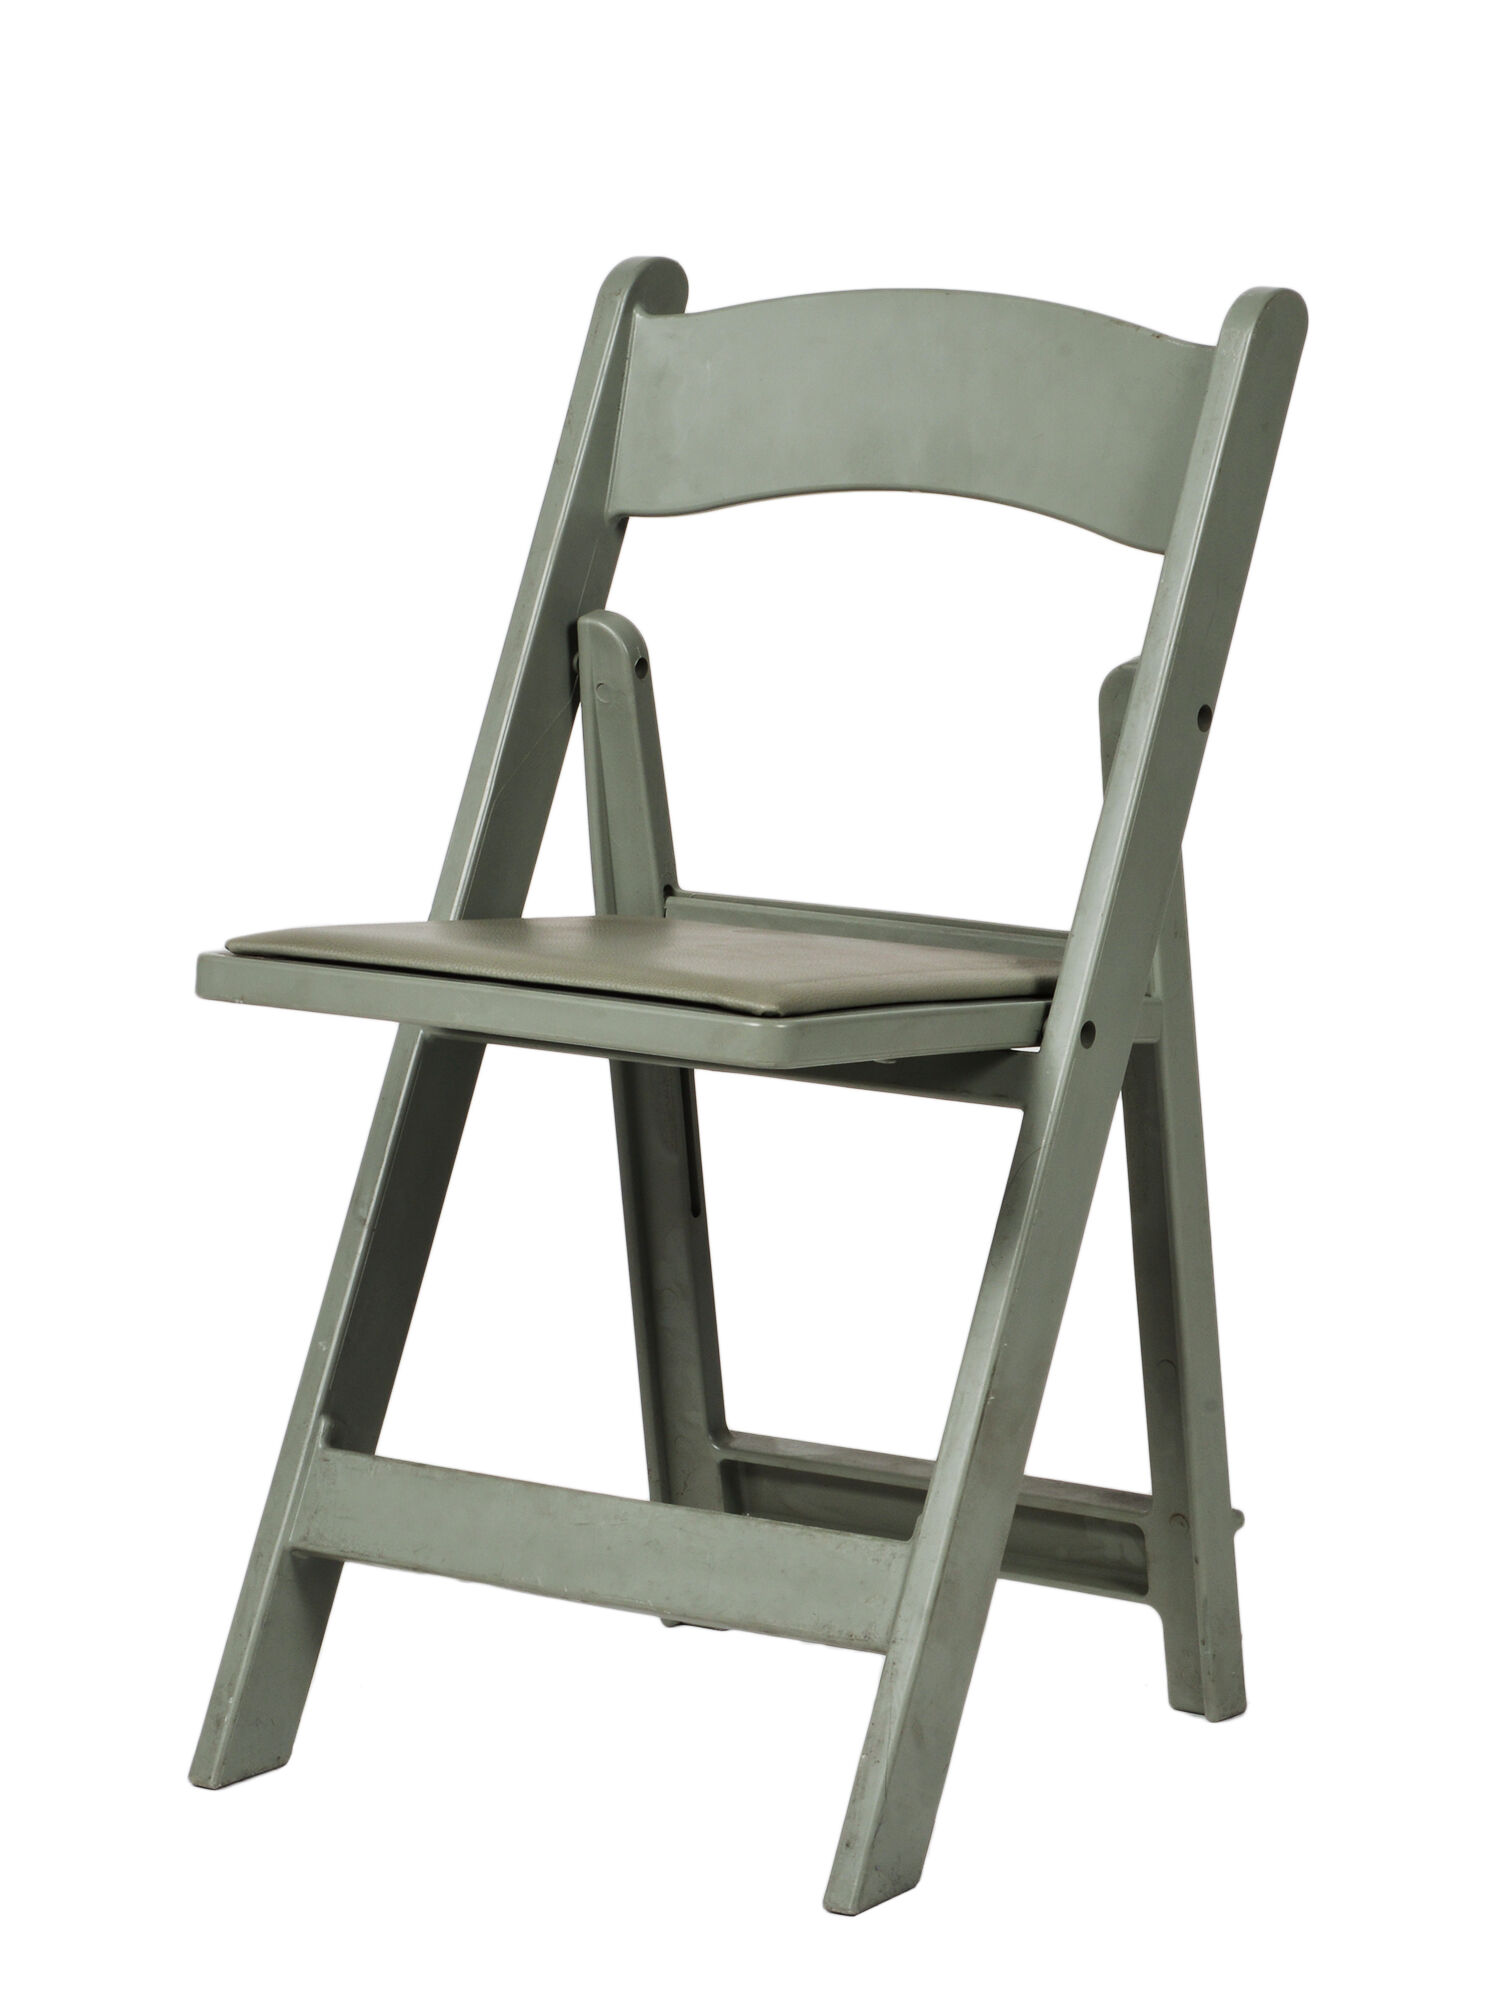 resin folding chairs for sale chair ground flint gray r 101 fg foldingchairs4less com max is on now